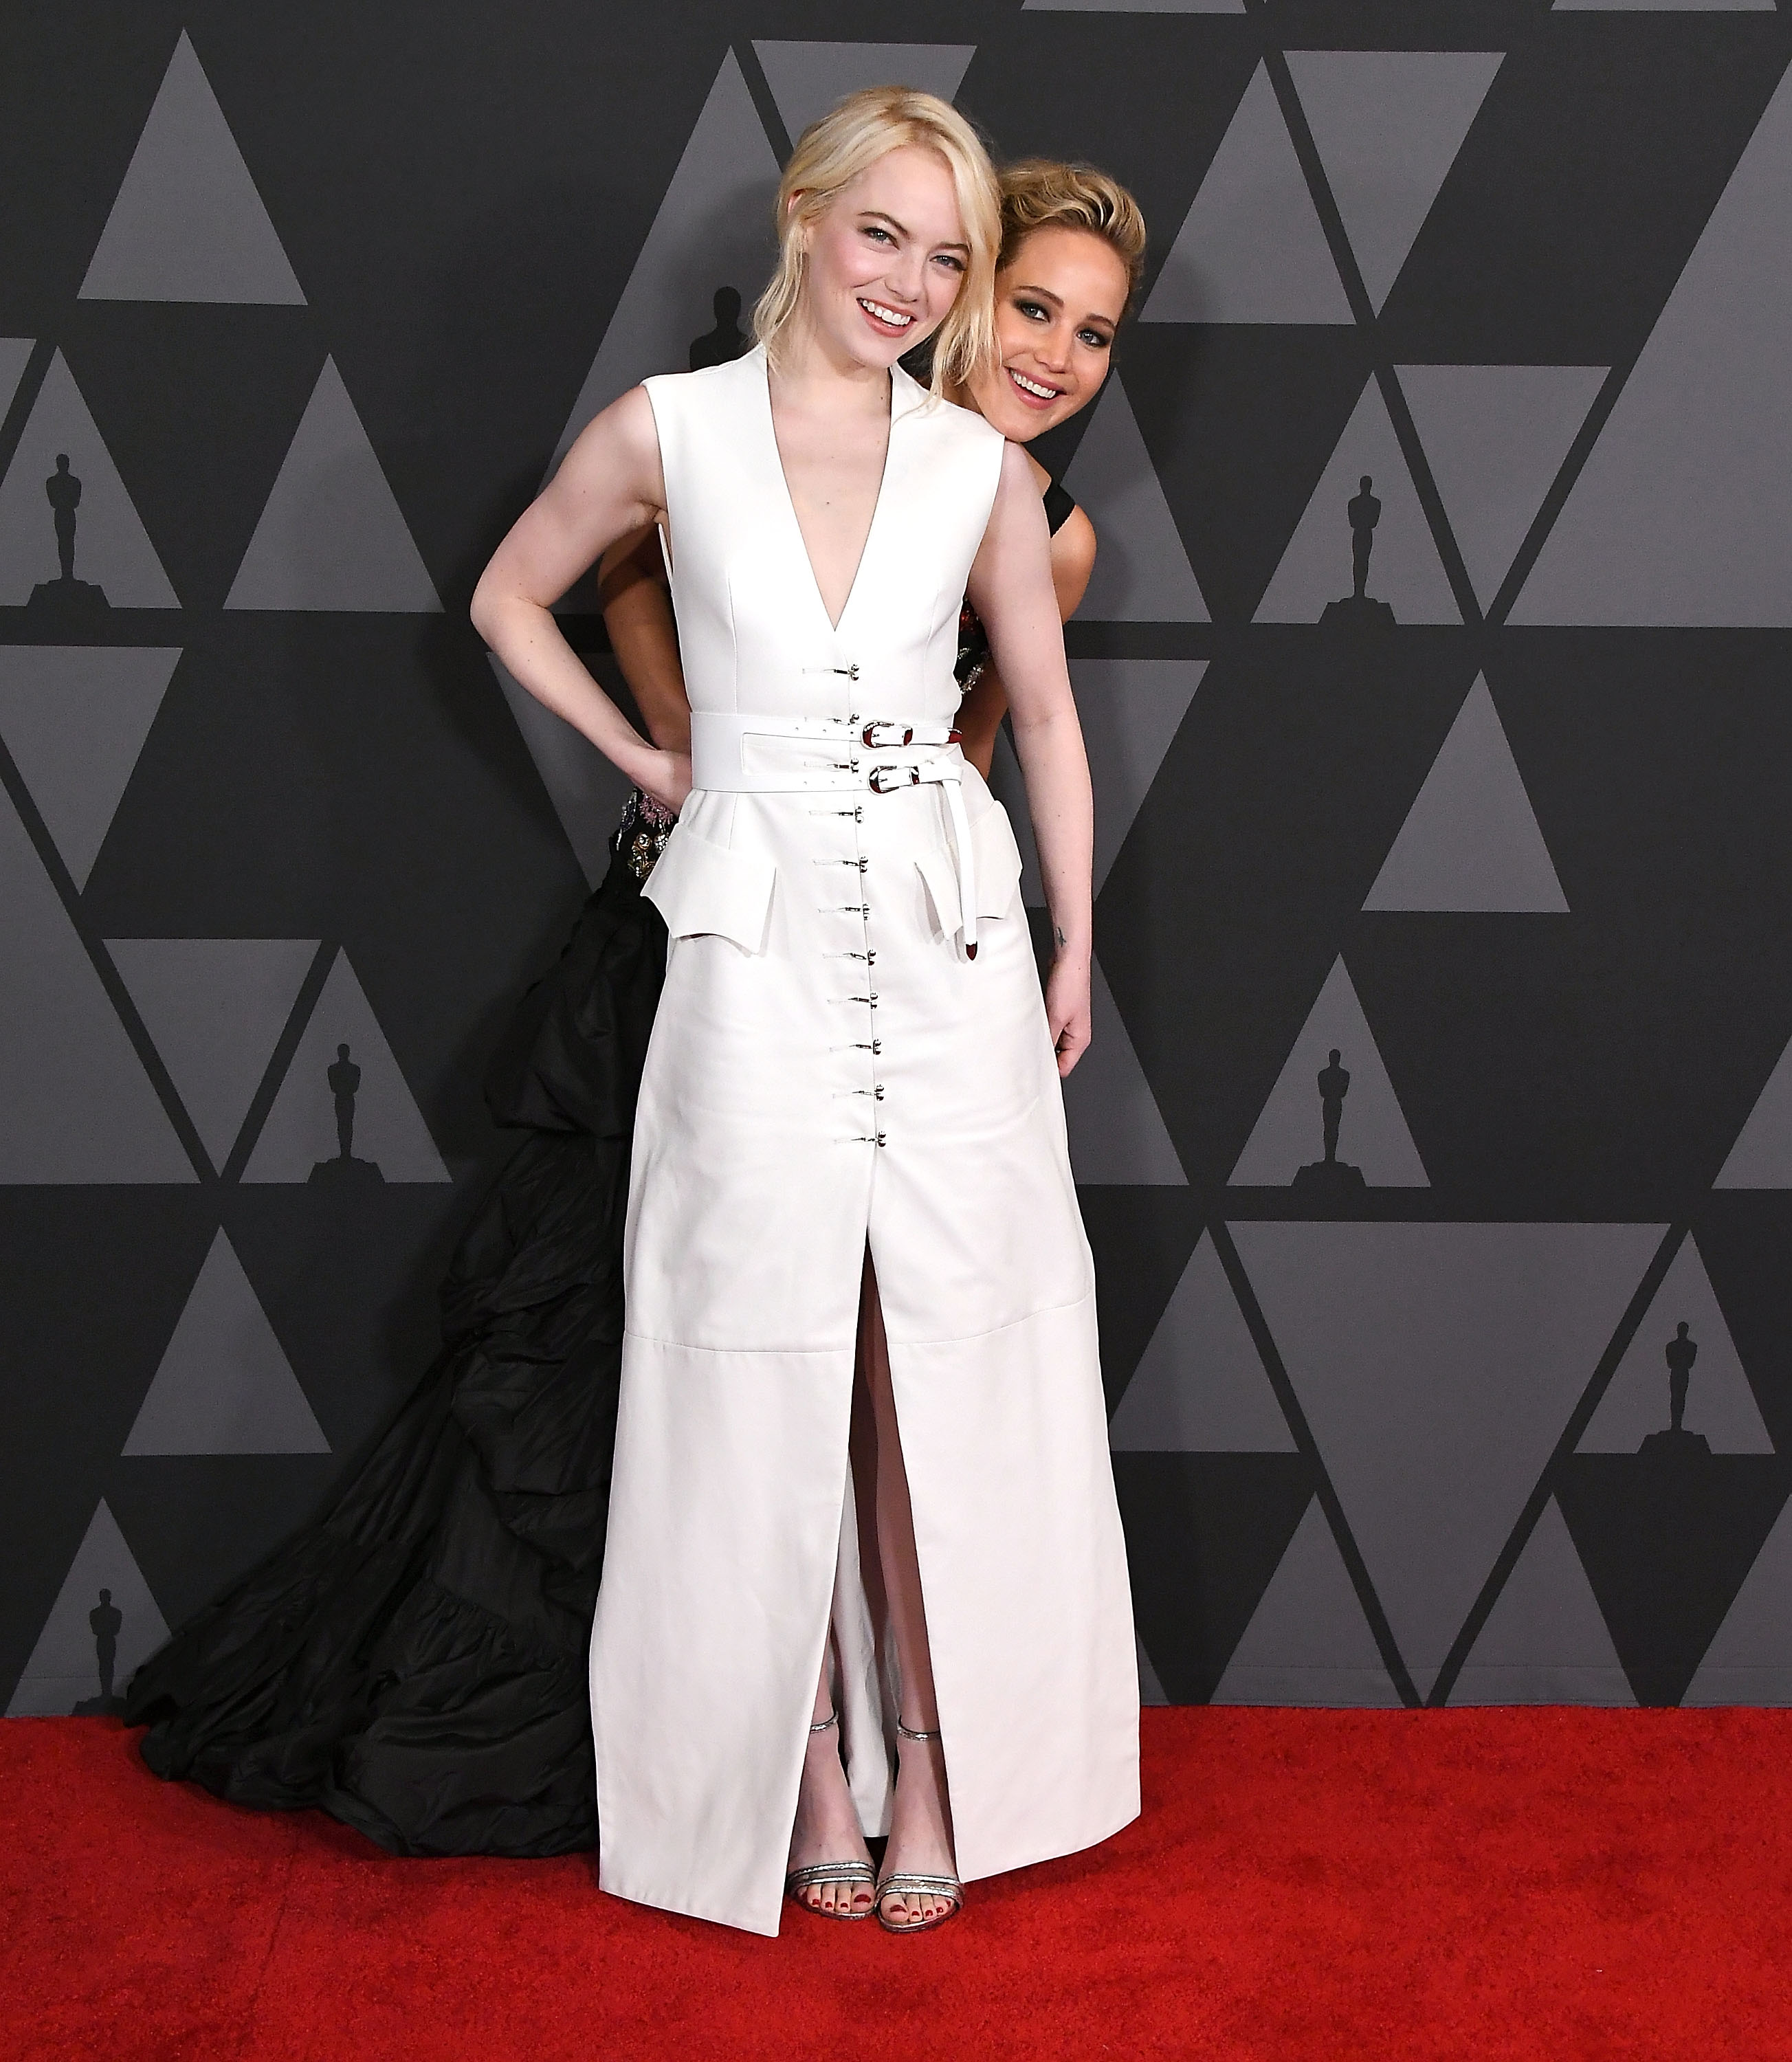 Jennifer Lawrence, Emma Stone arrives at the Academy Of Motion Picture Arts And Sciences' 9th Annual Governors Awards at The Ray Dolby Ballroom at Hollywood & Highland Center on November 11, 2017 in Hollywood, California.